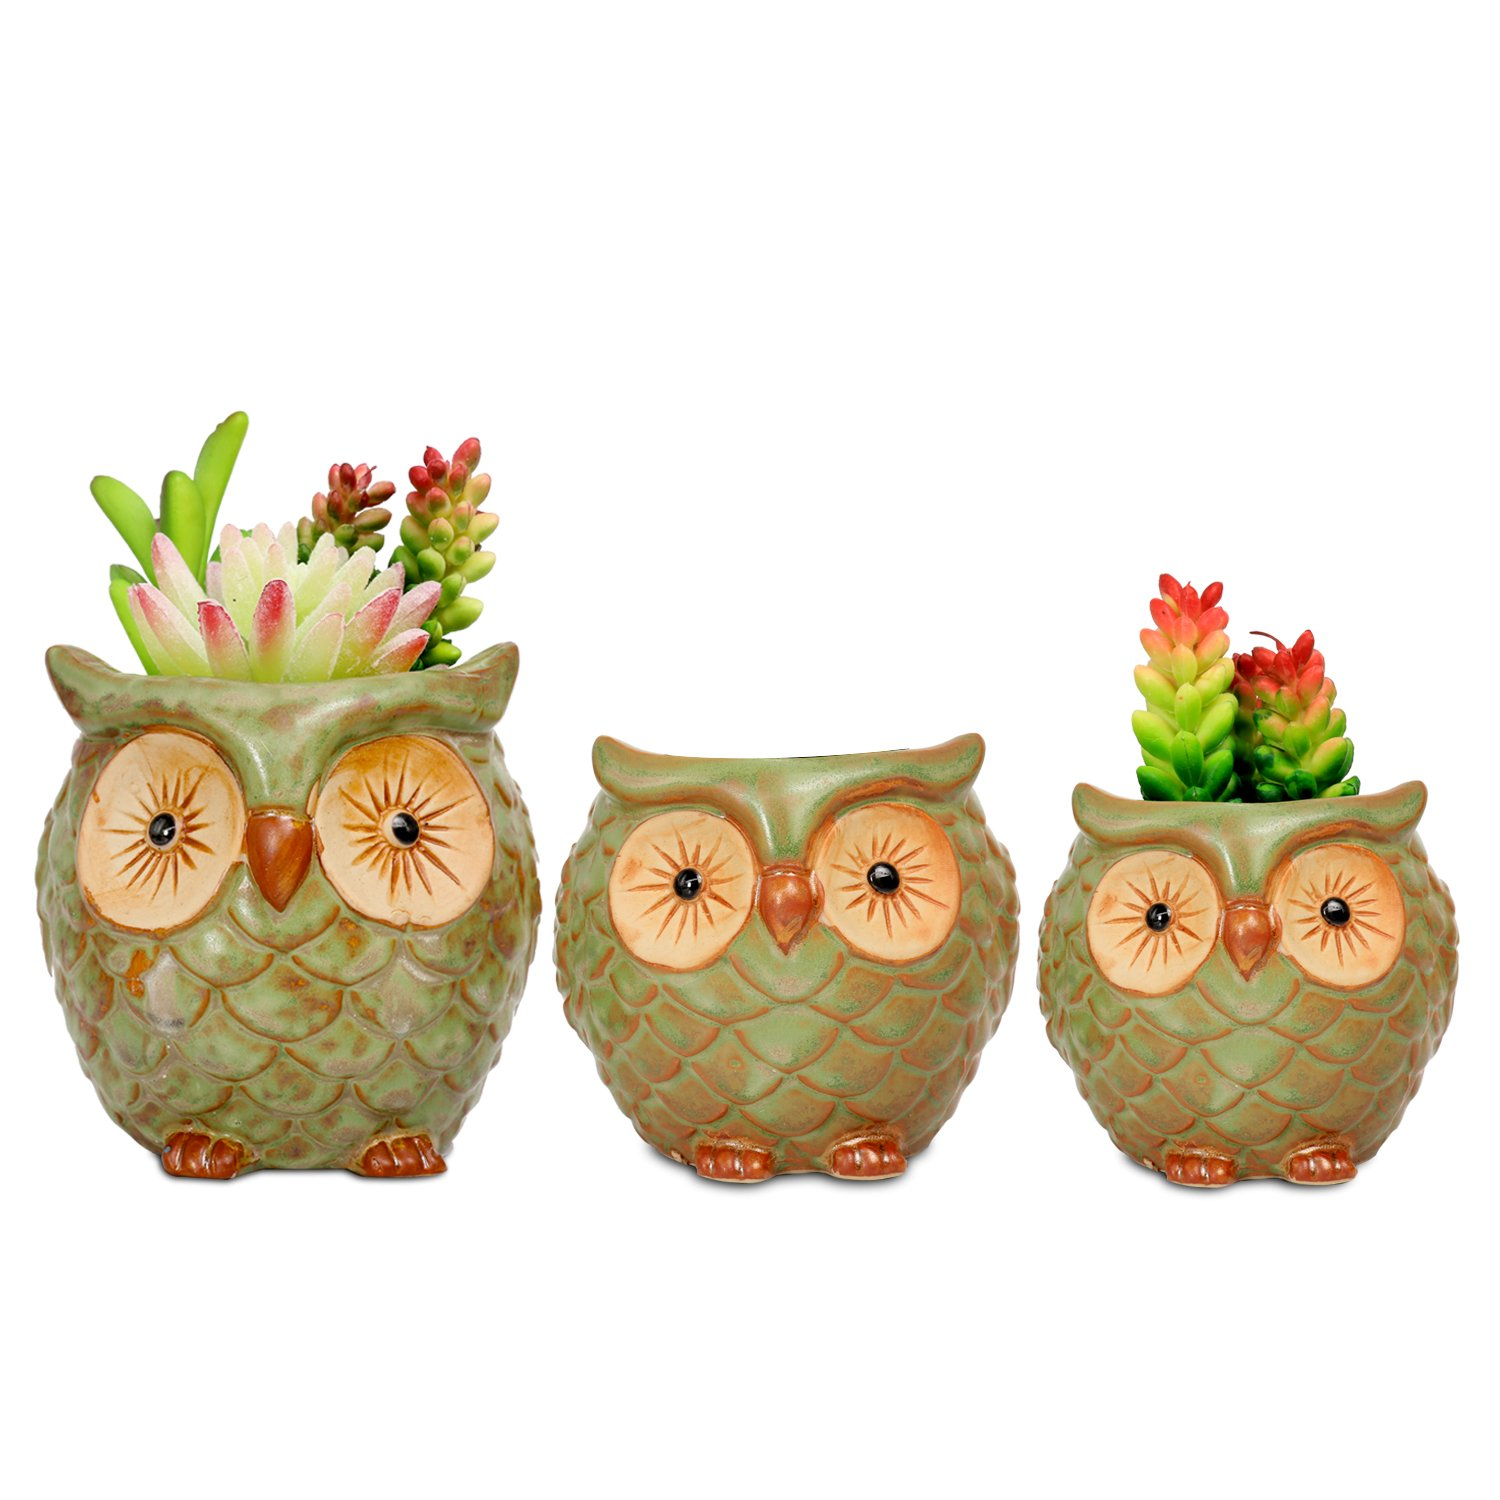 ROSE CREATE 3pcs 3in / 4in / 4.5in Owl Flower Pots by ROSE CREATE (Image #5)